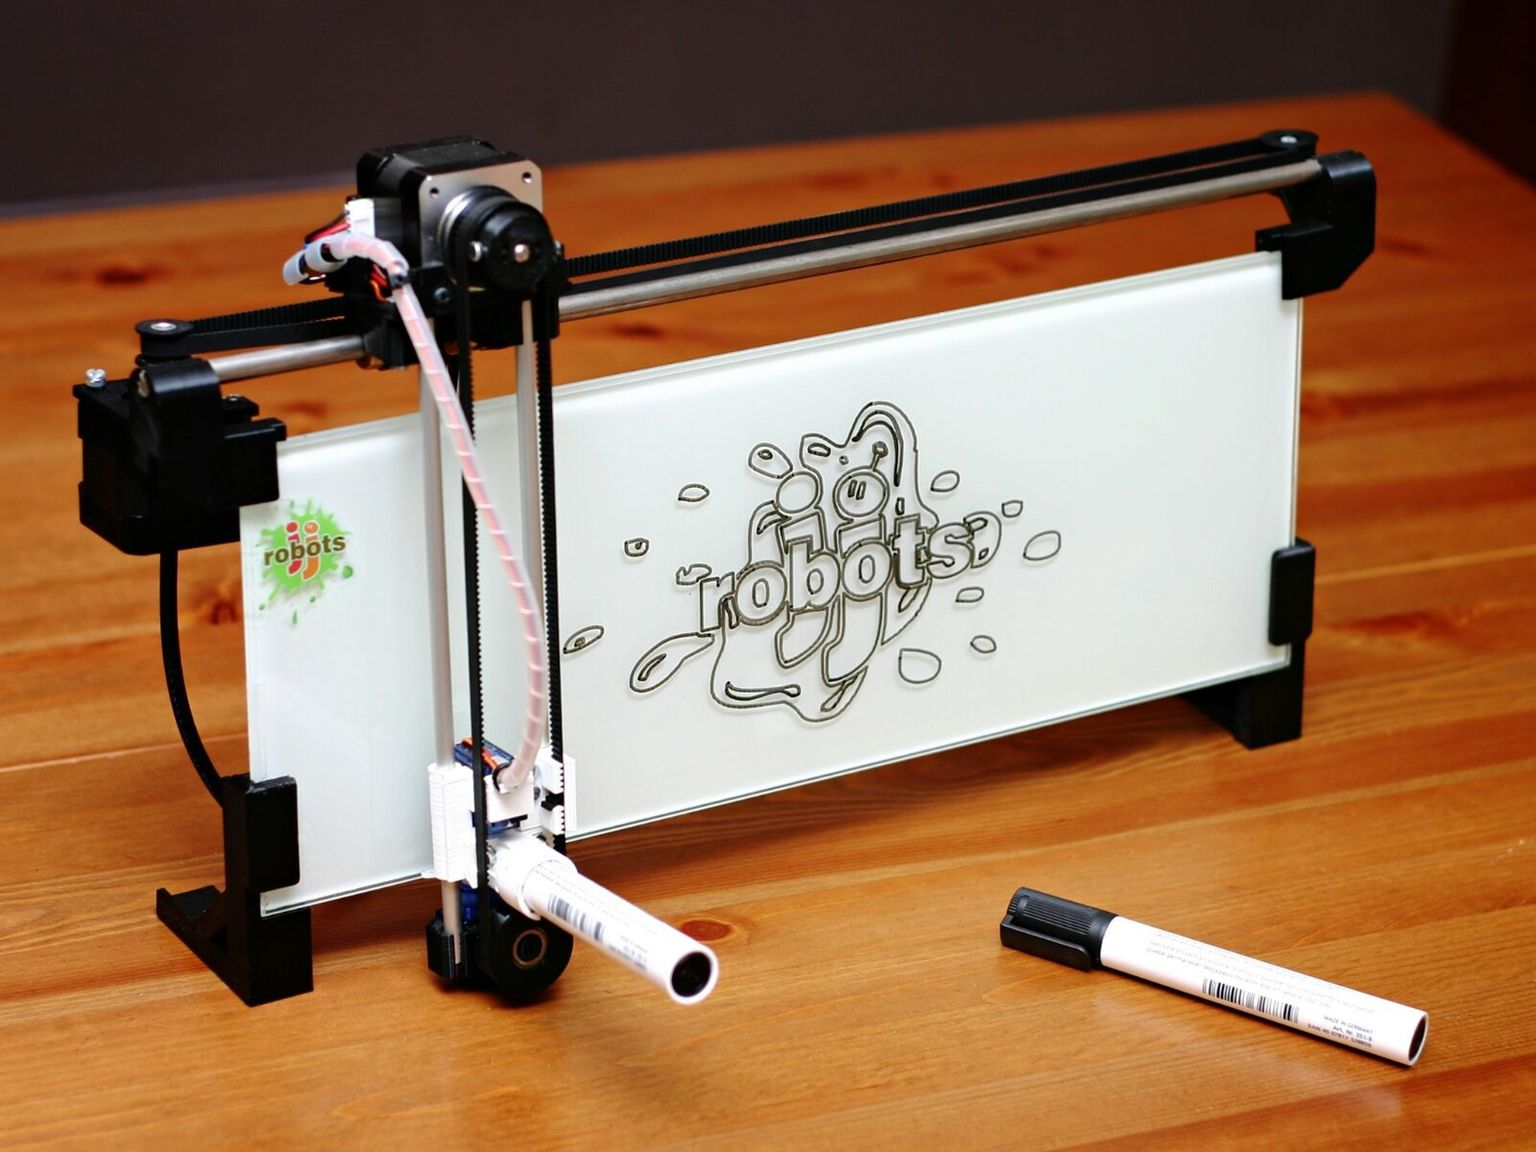 The Iboardbot Is An Internet Controlled Robot Capable Of Writing